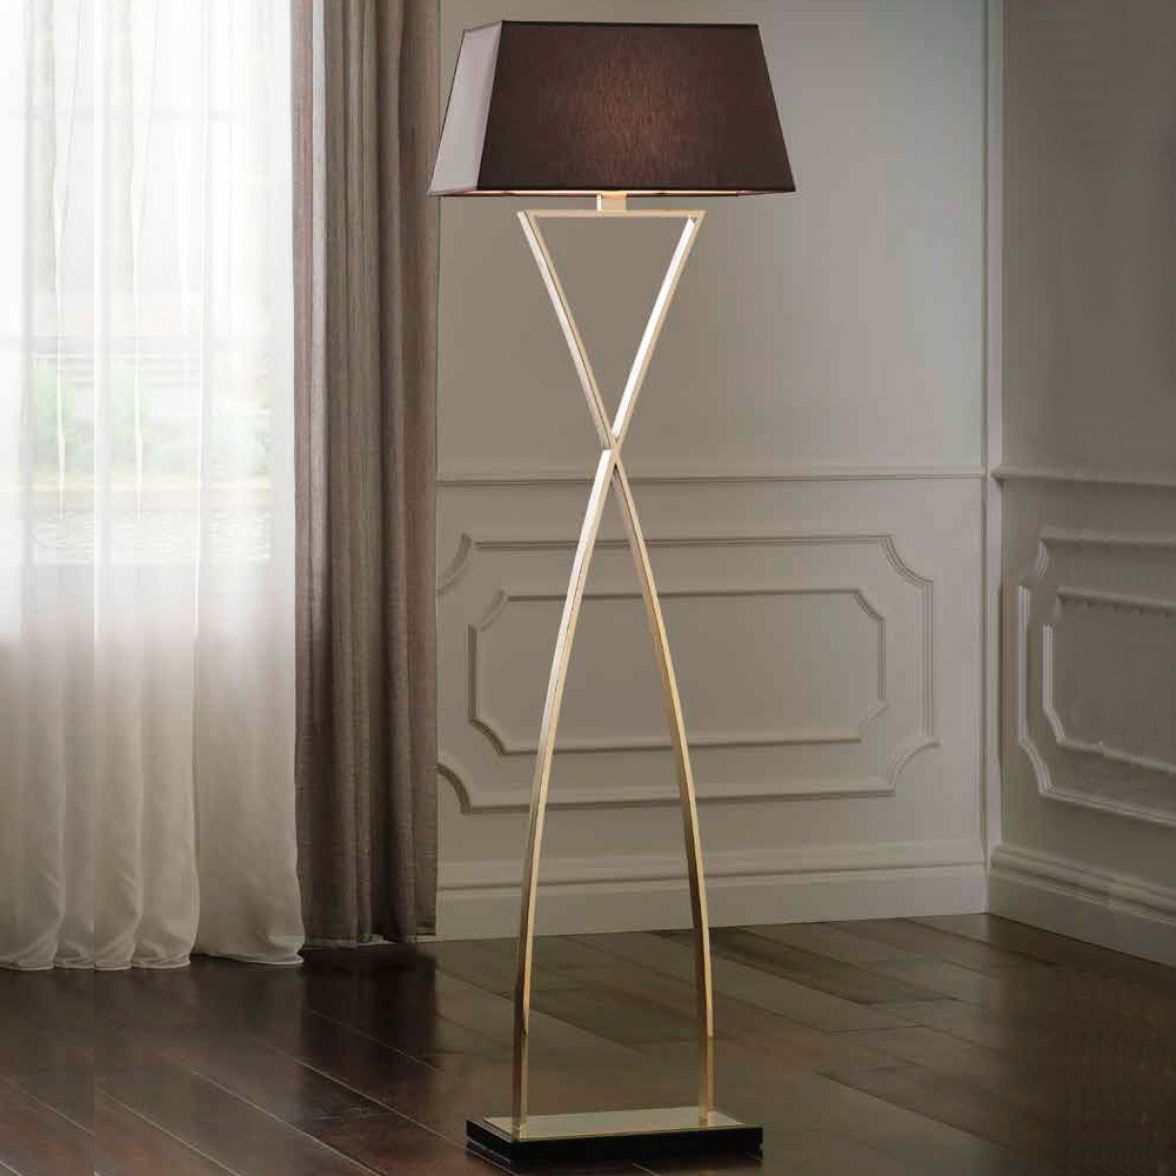 Chloe floor lamp